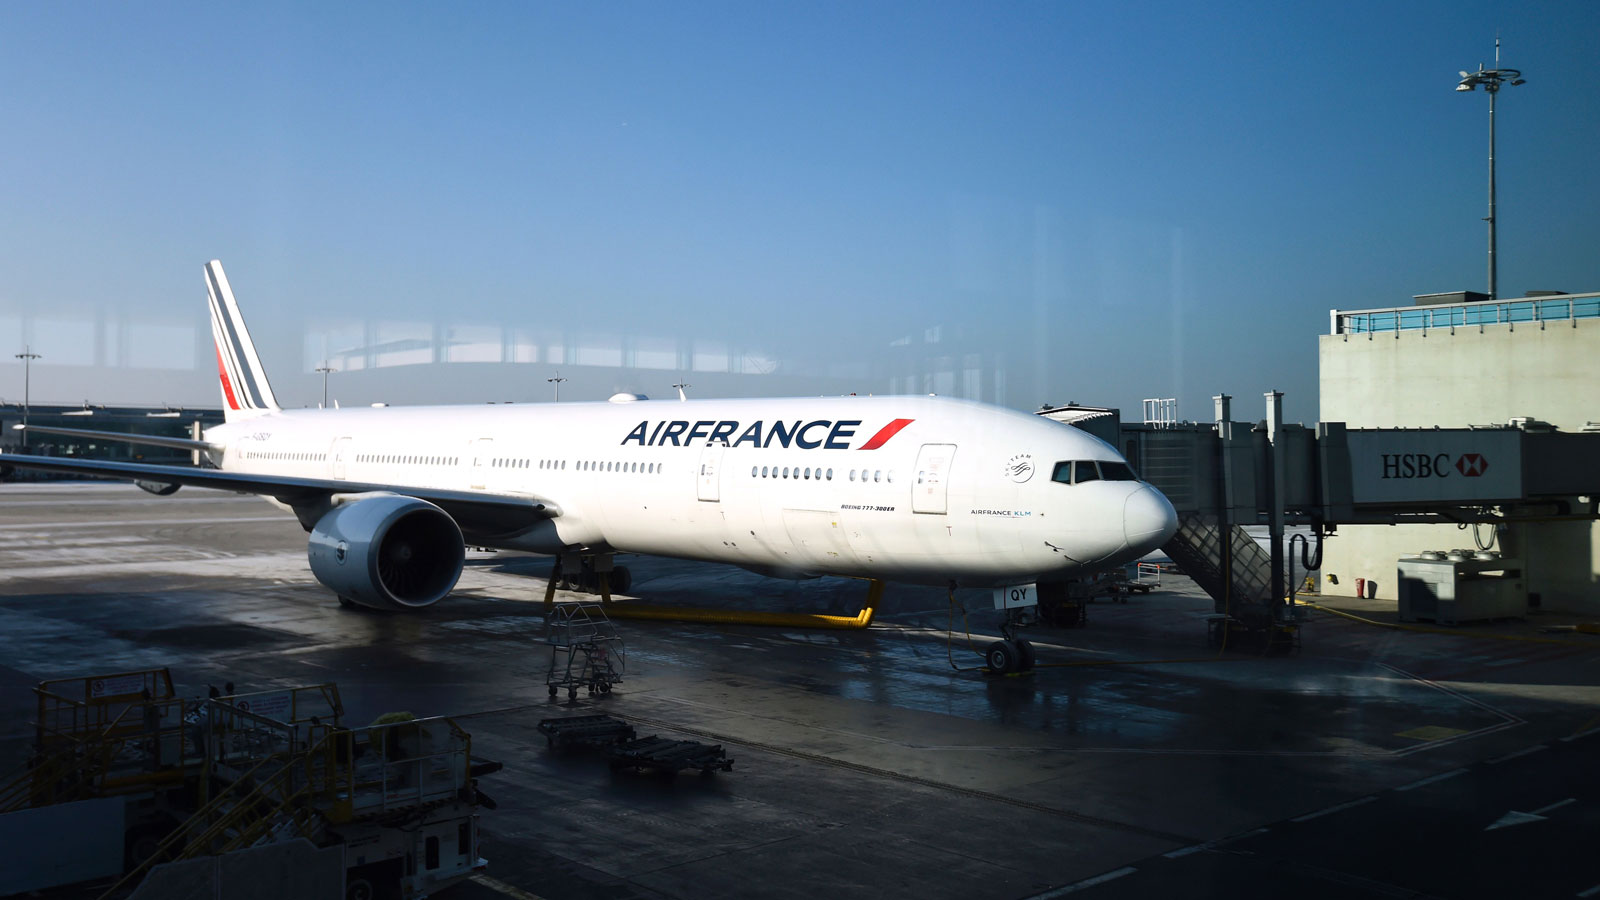 Air France is Launching a Pop-Up Restaurant in NYC with Daniel Boulud